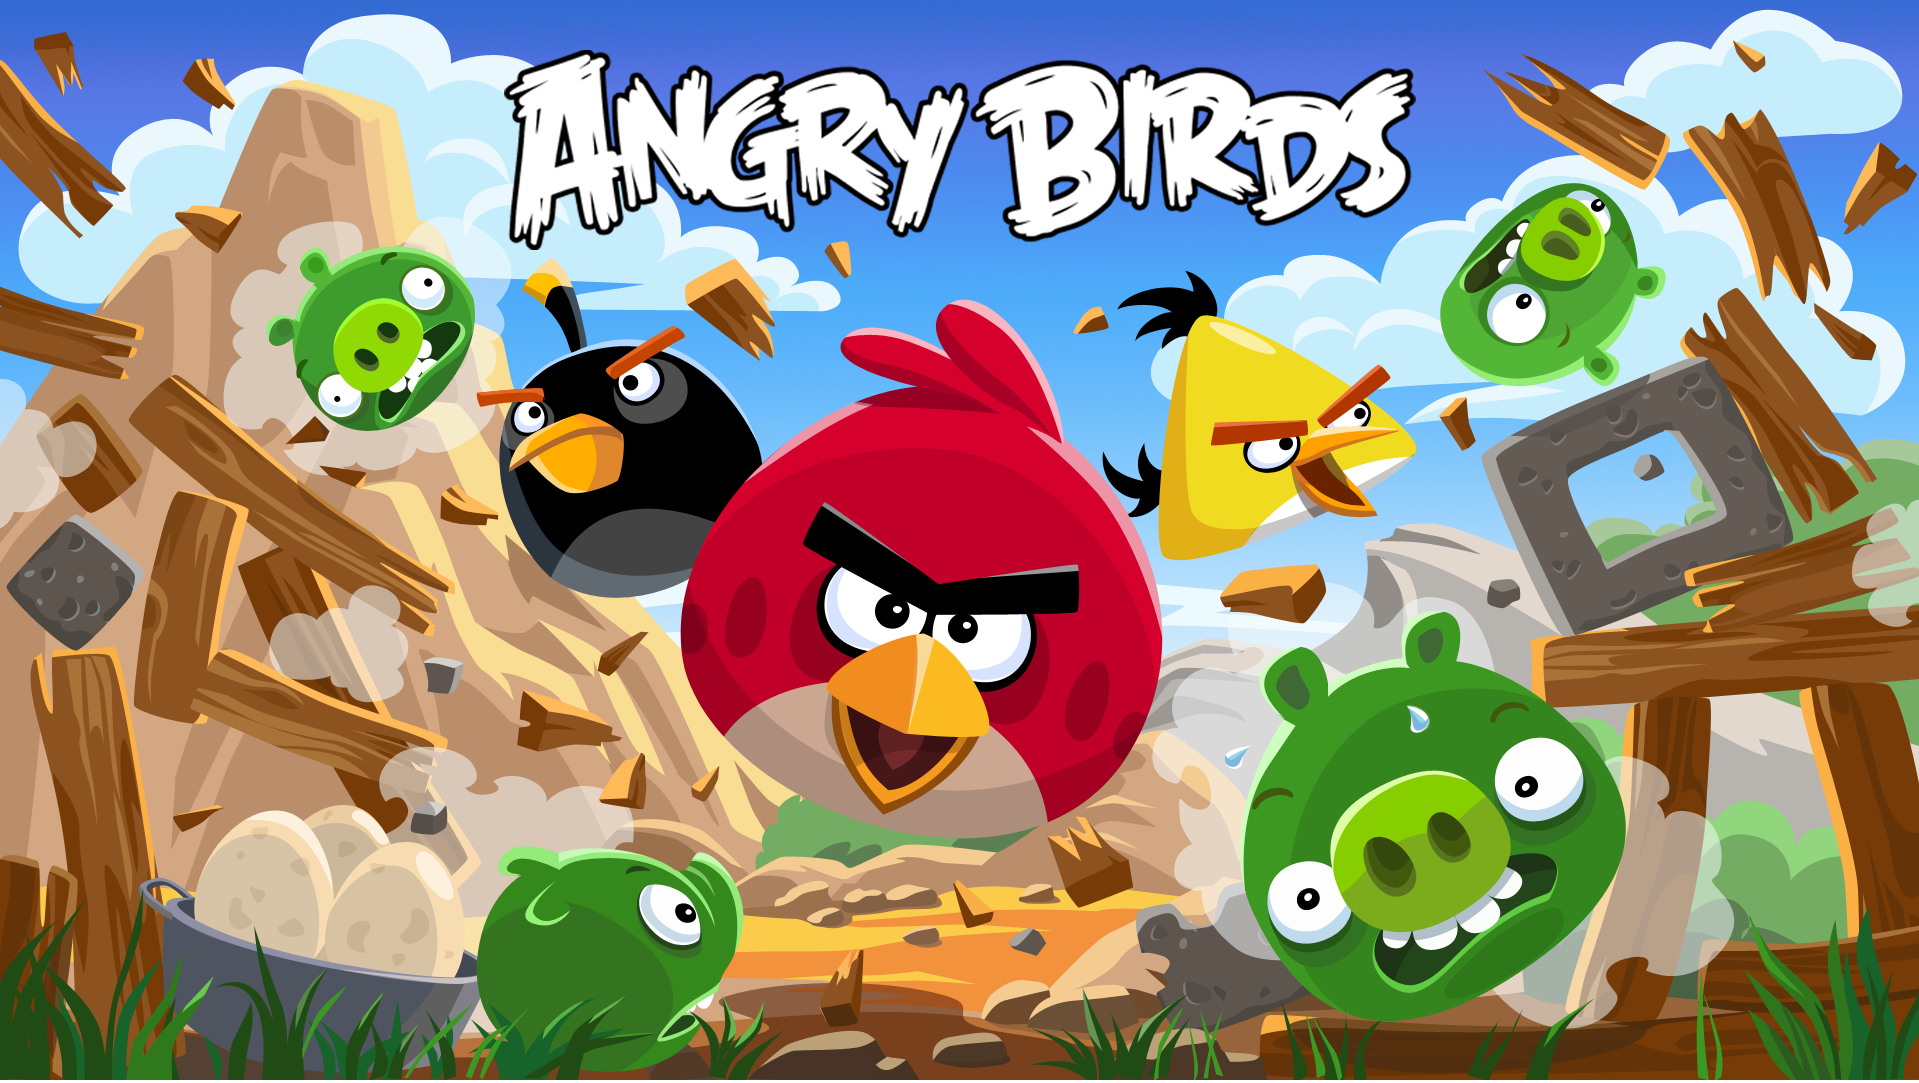 The ultimate angry birds online strategy guide, tips, tricks.